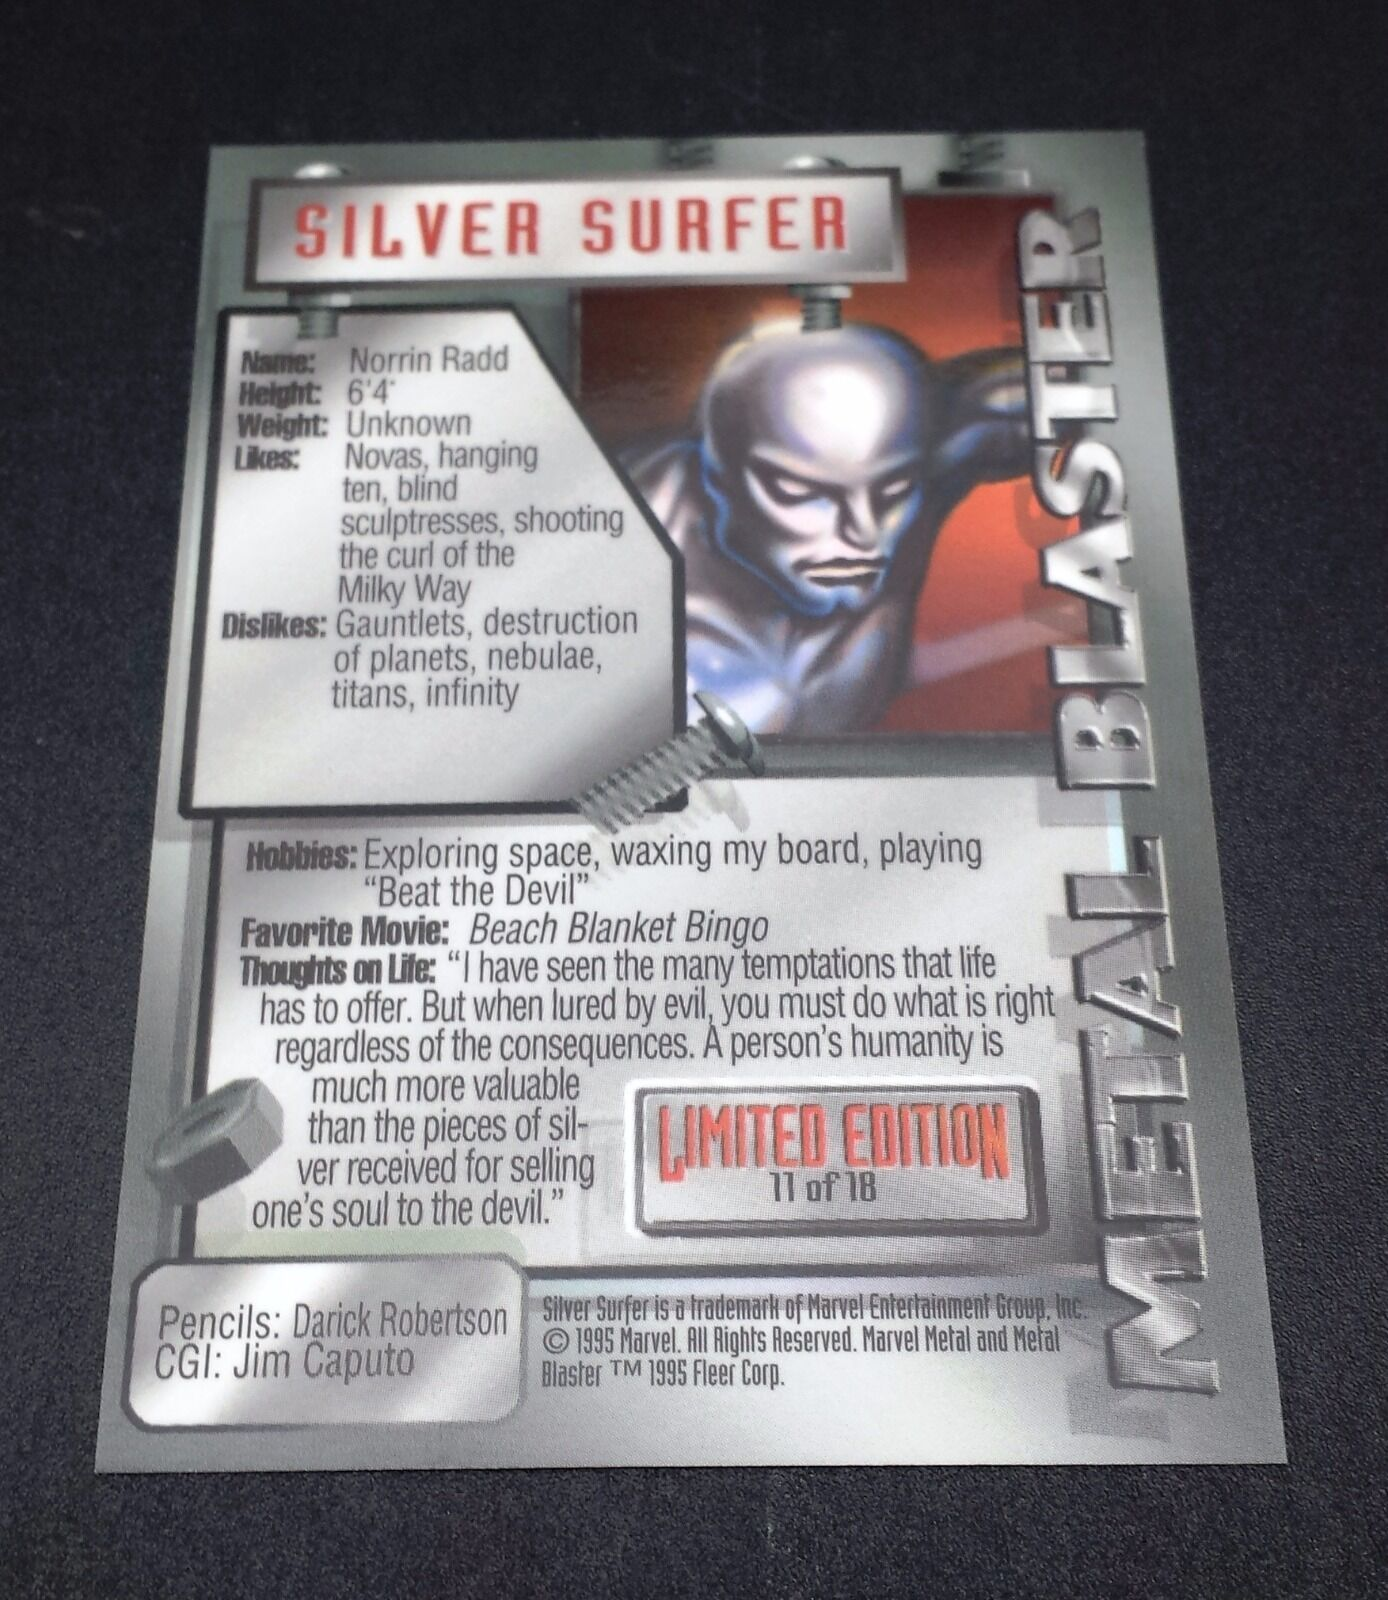 Fleer 1995 Marvel Metal Blaster Subset Chase Card #11 of 18 Silver Surfer